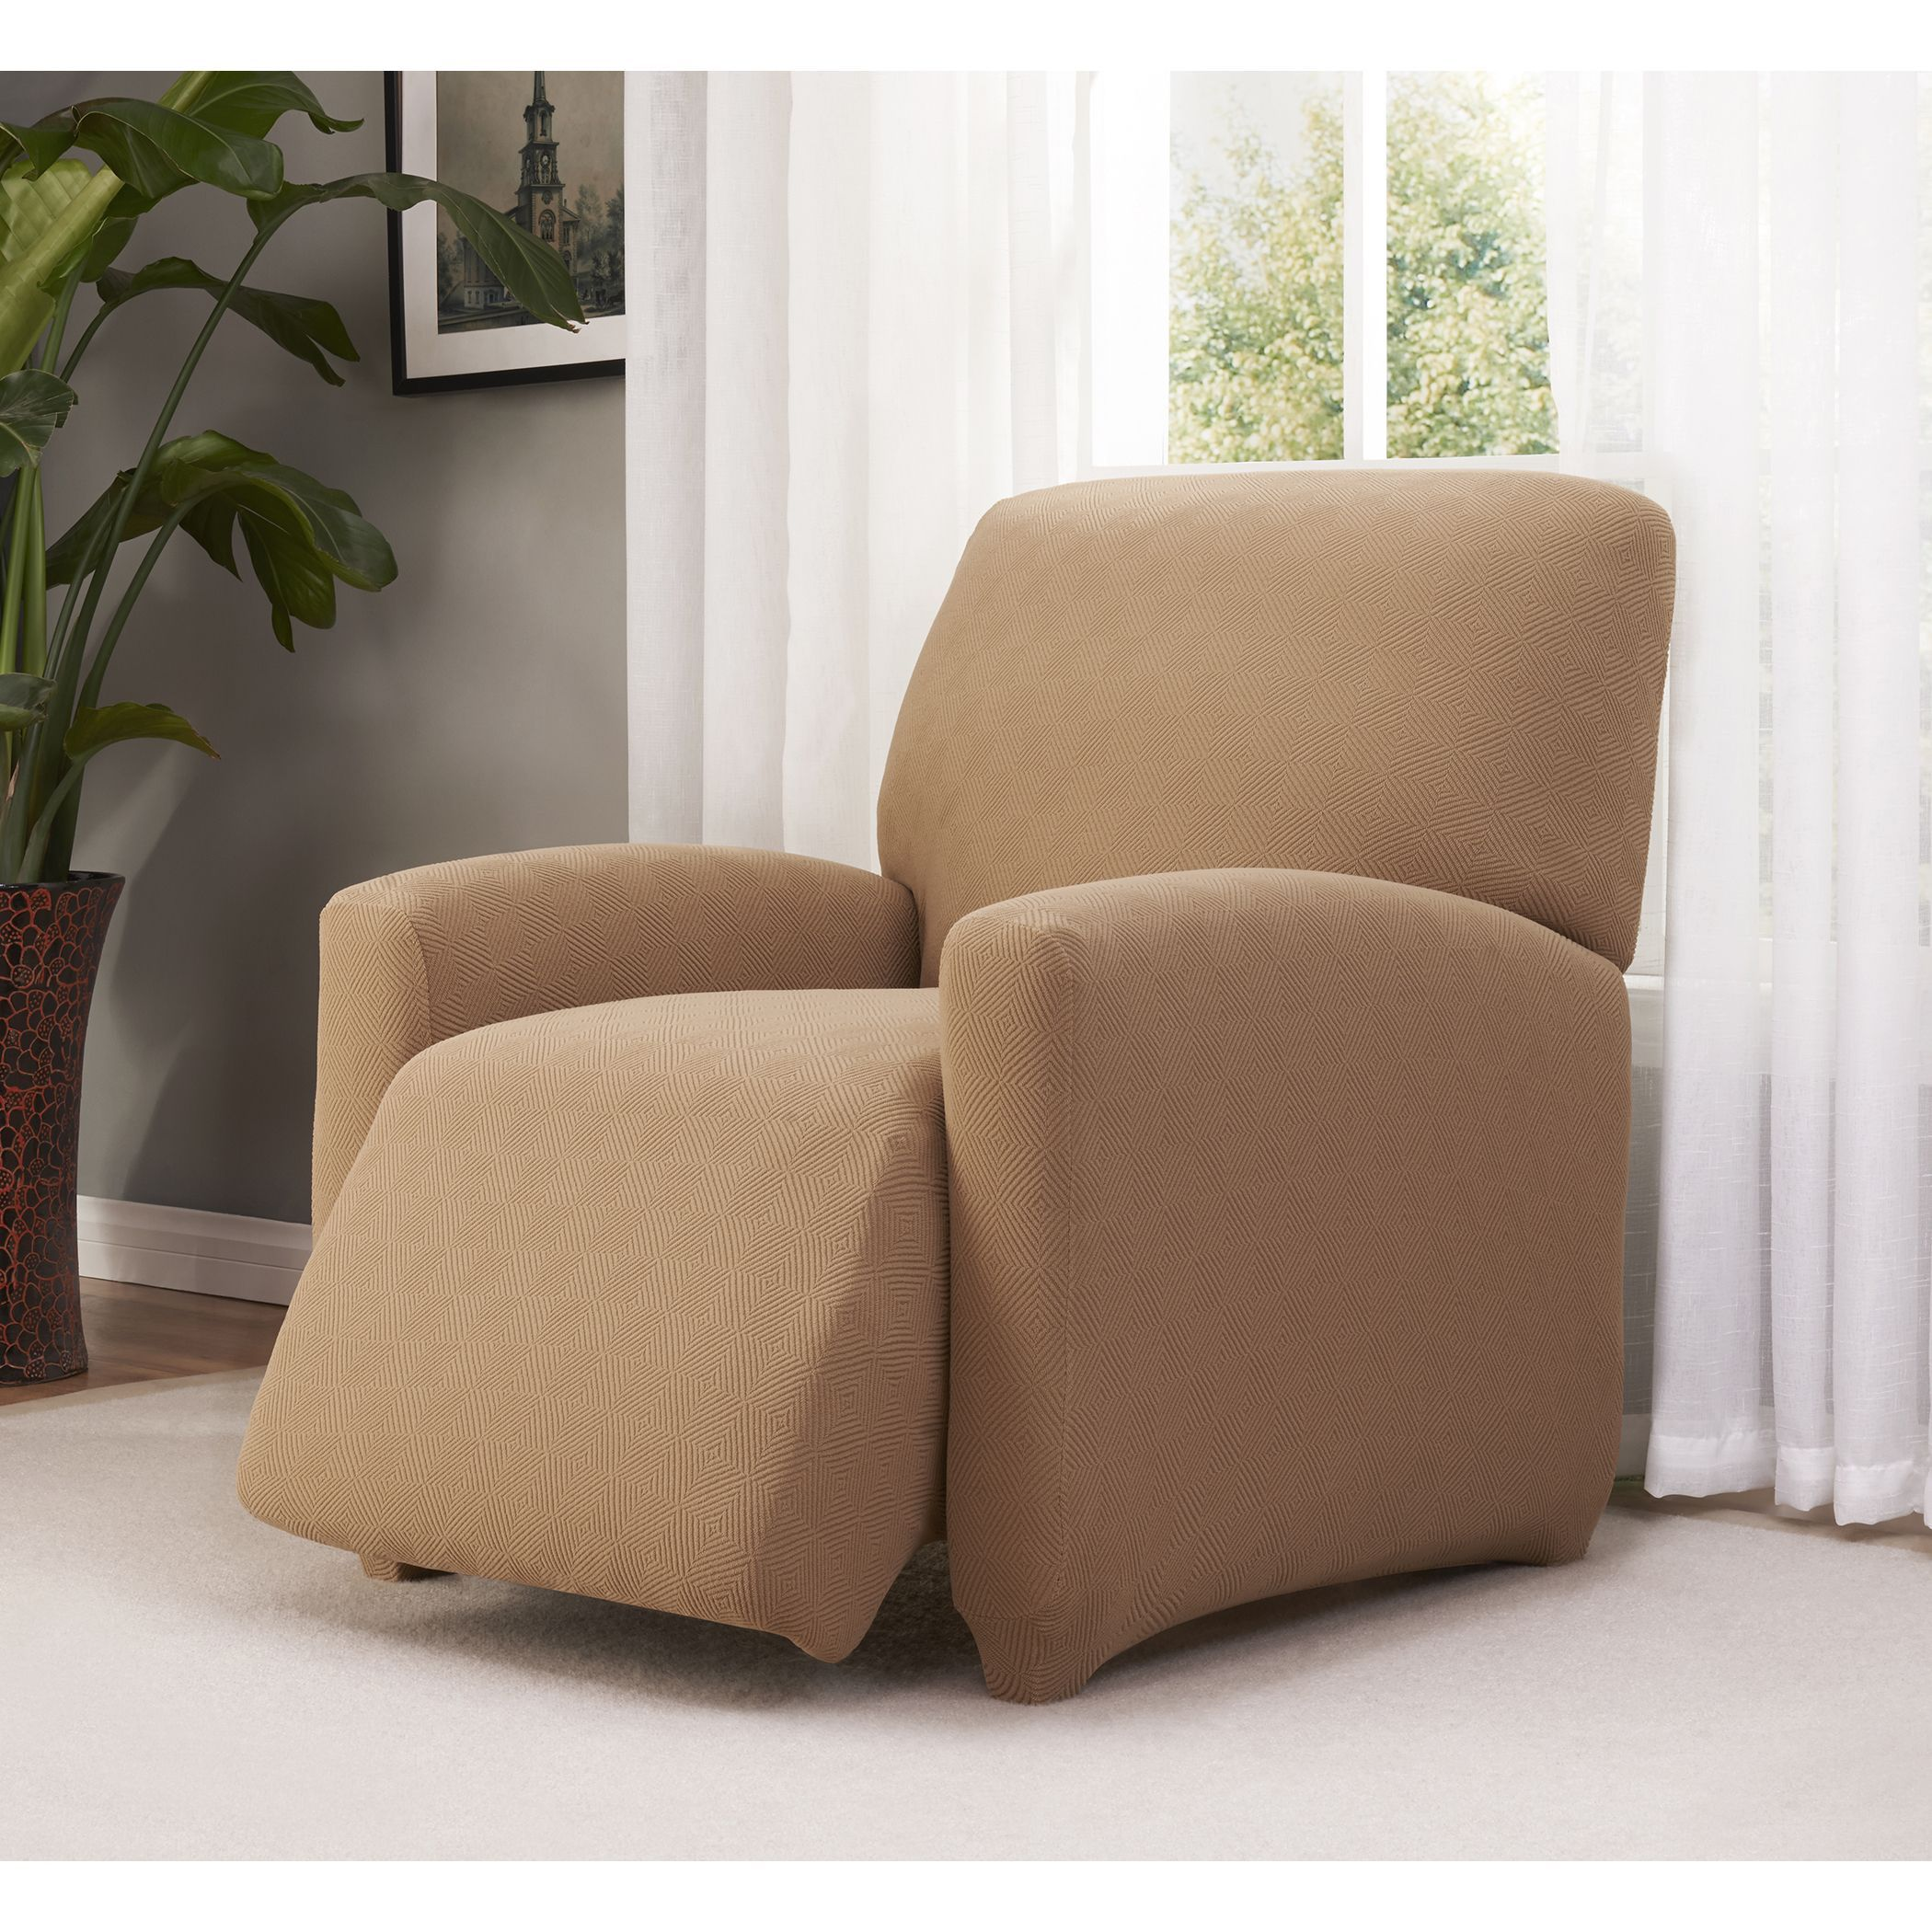 slipcover stretch jersey recliners pinterest large pin for products recliner slipcovers